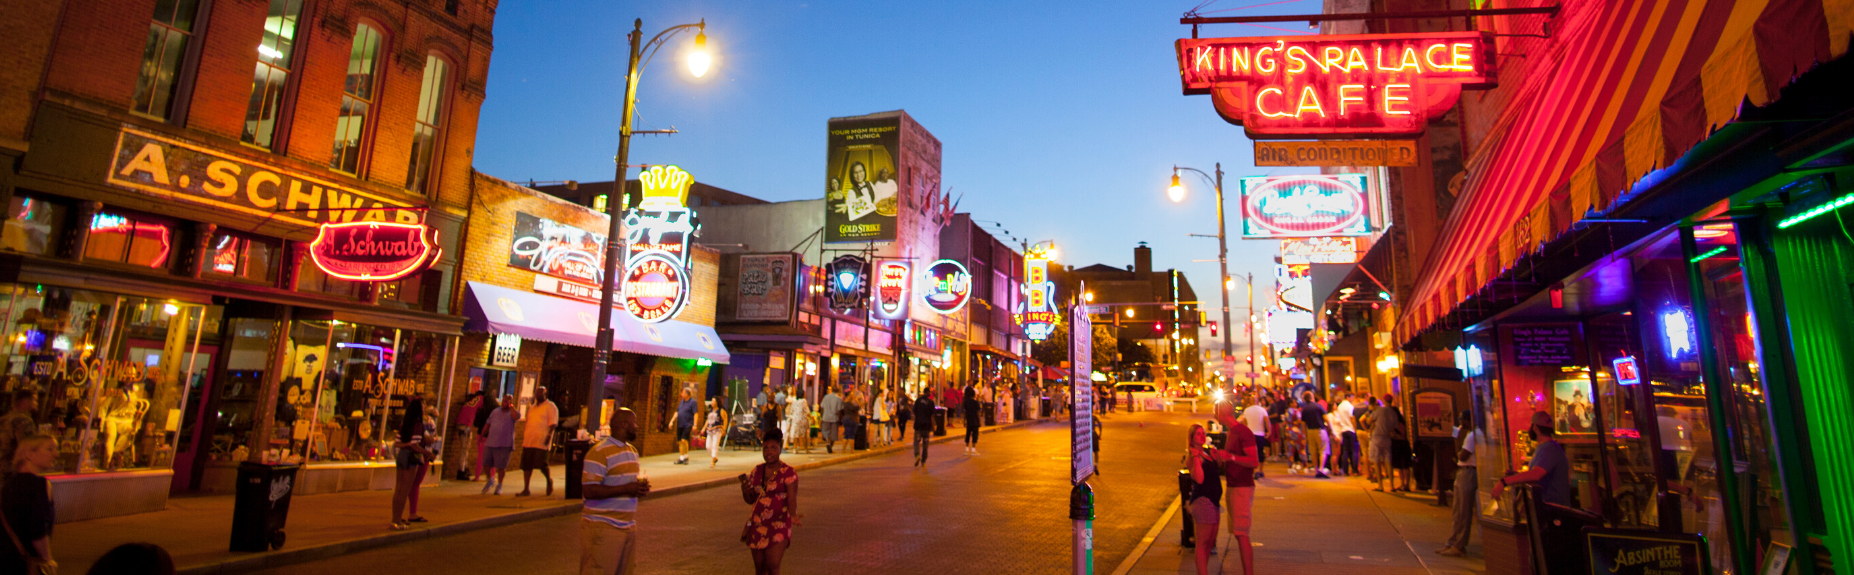 the complete memphis experience cruise packages